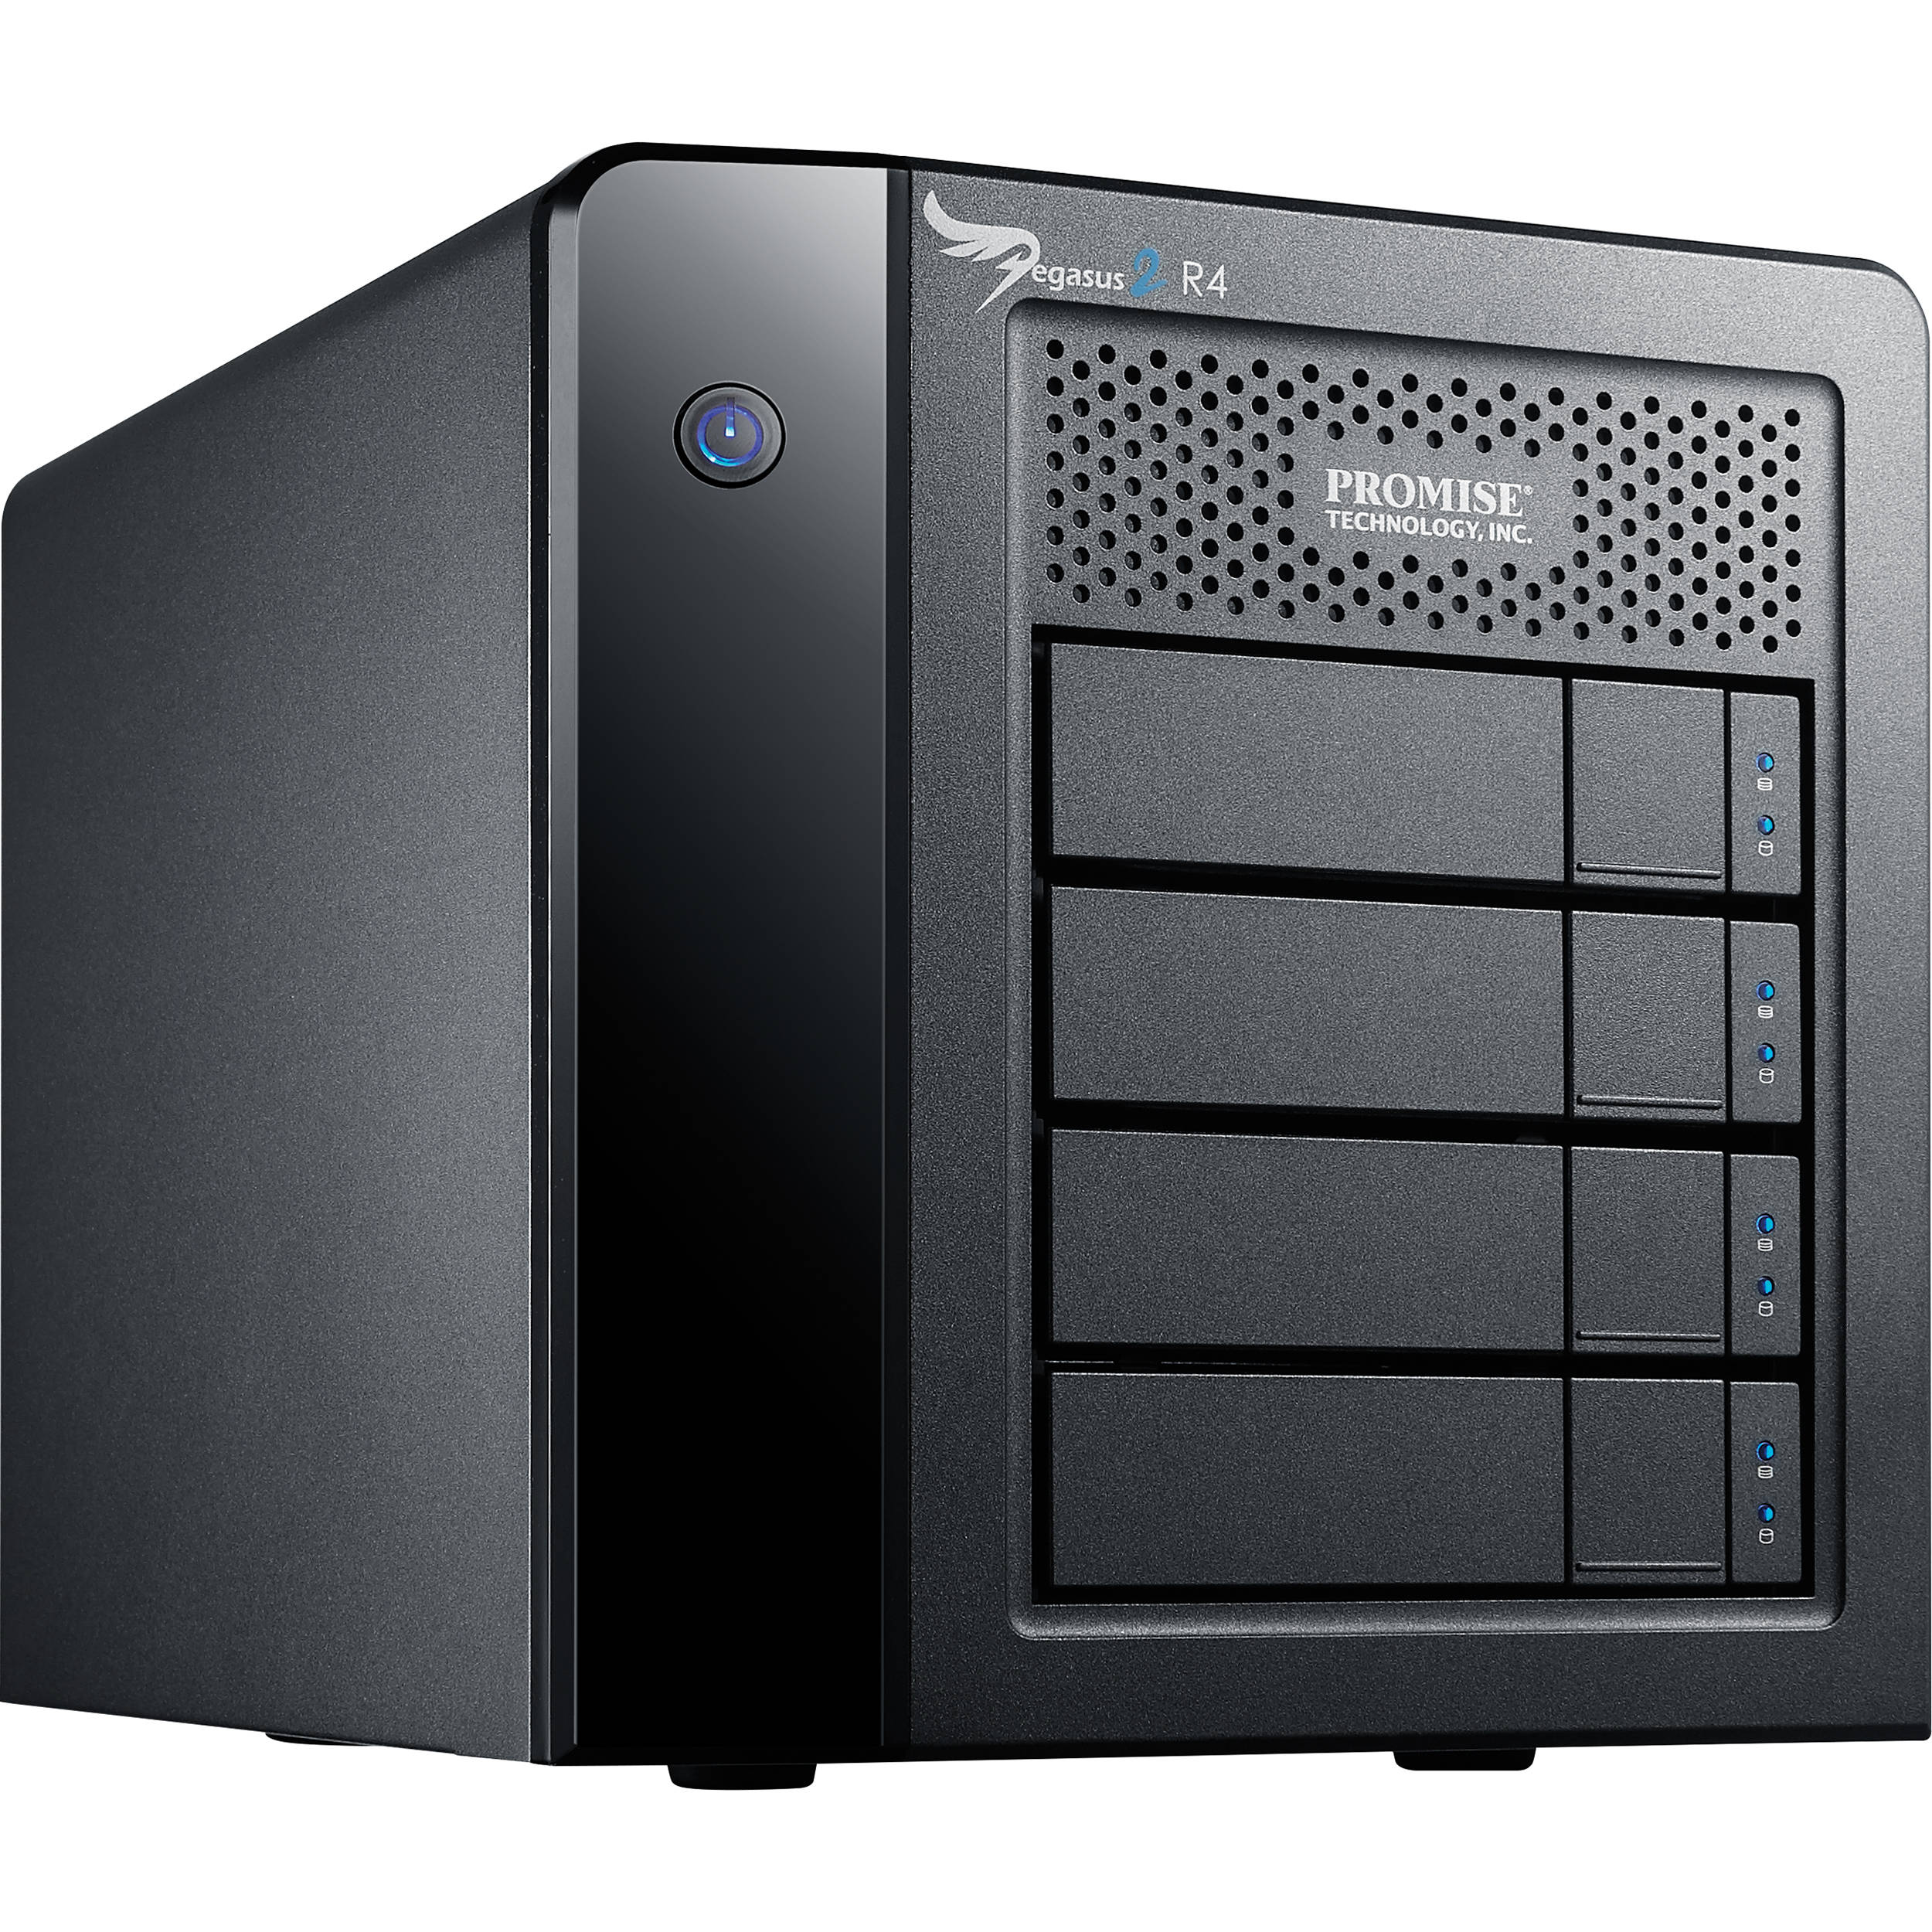 Promise technology 8tb pegasus2 r4 thunderbolt 2 raid for Storage bay